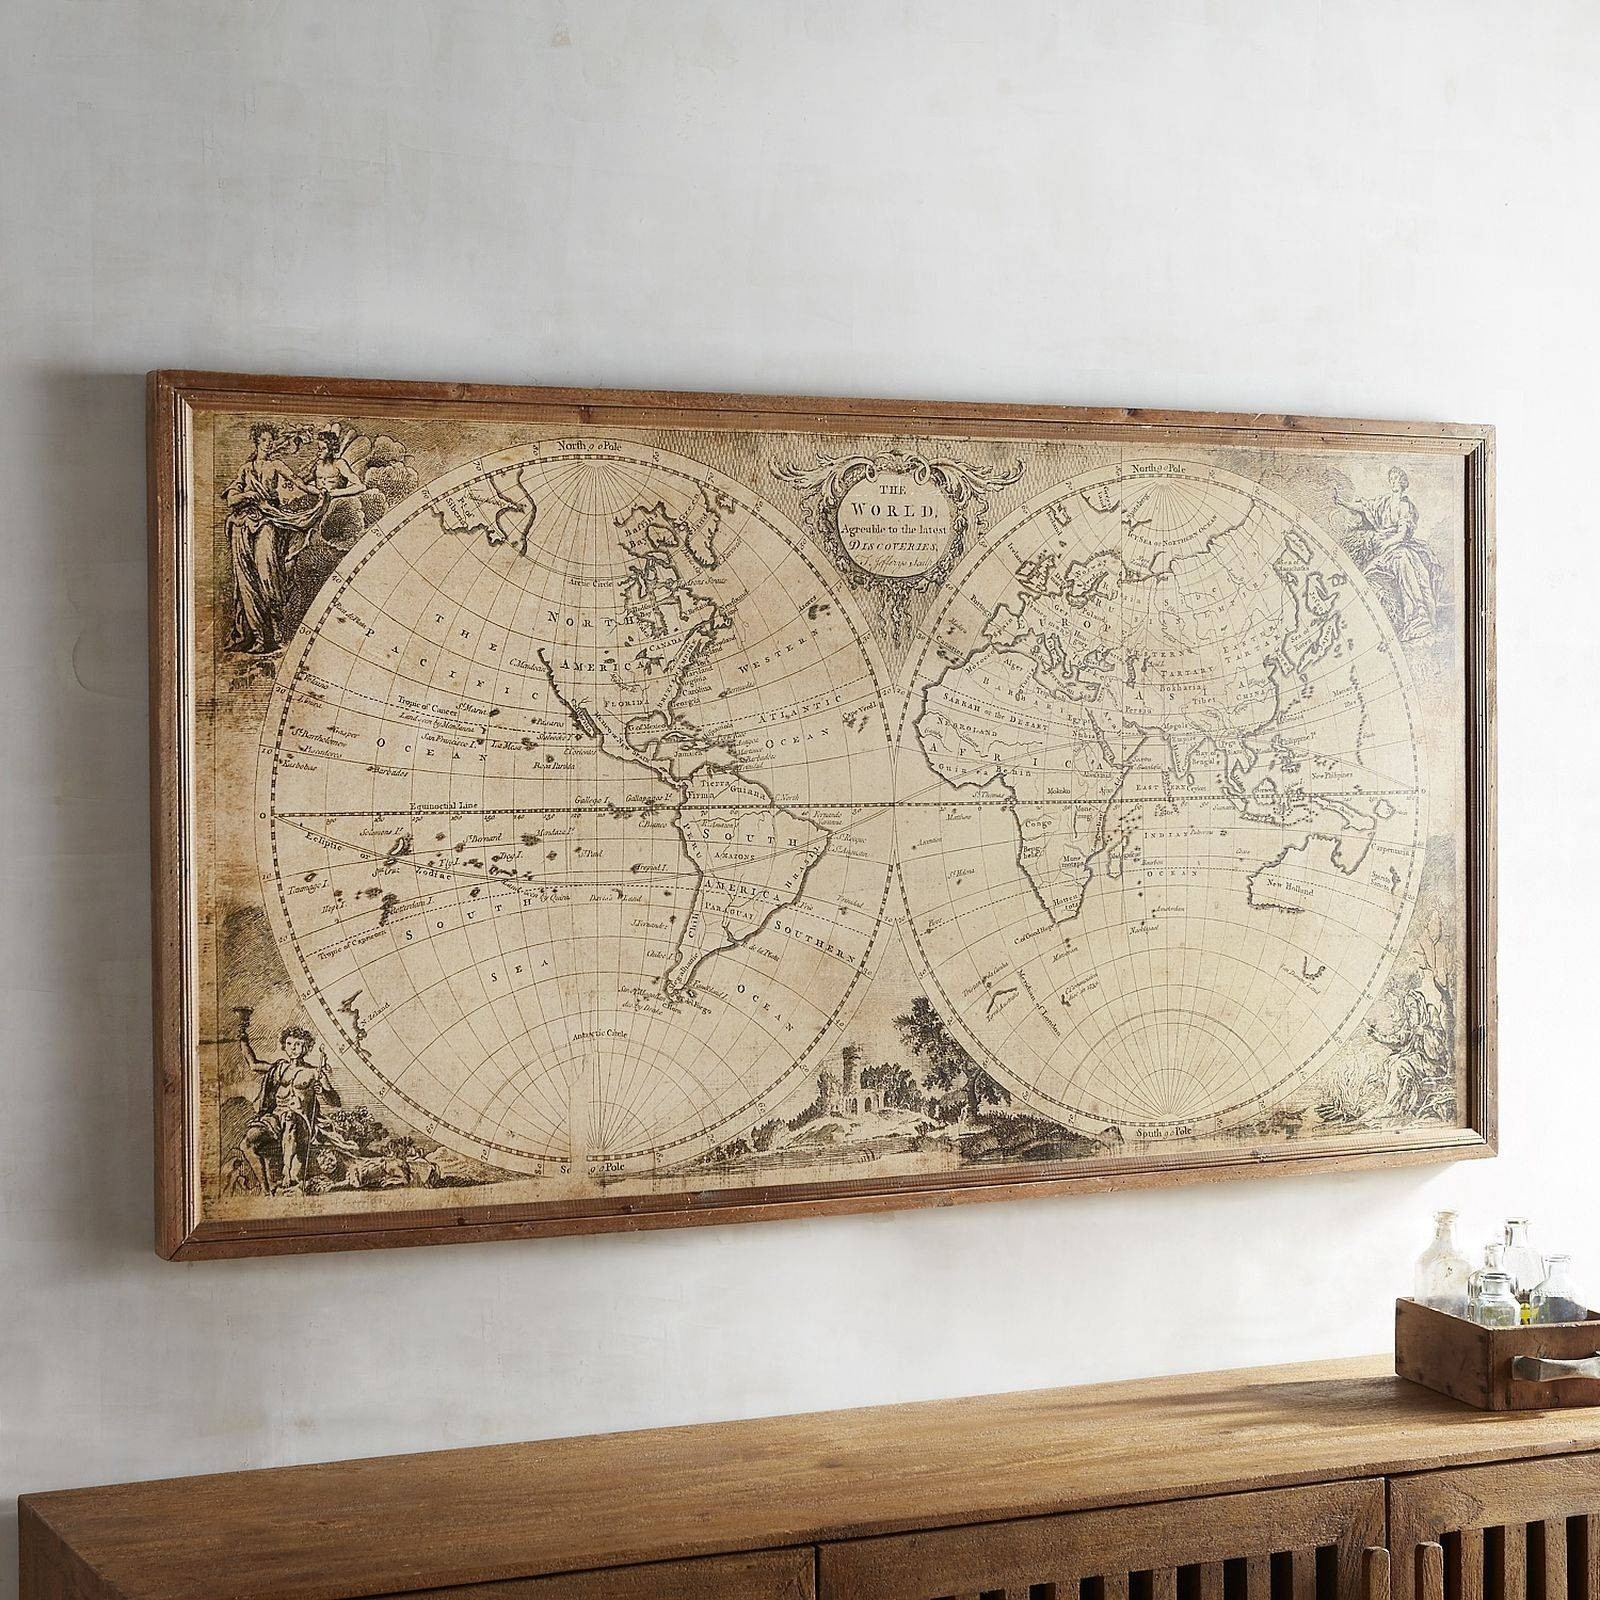 Latest Framed World Map Wall Art Throughout Large On Baadbe Maps Of for Map Wall Art (Image 8 of 20)